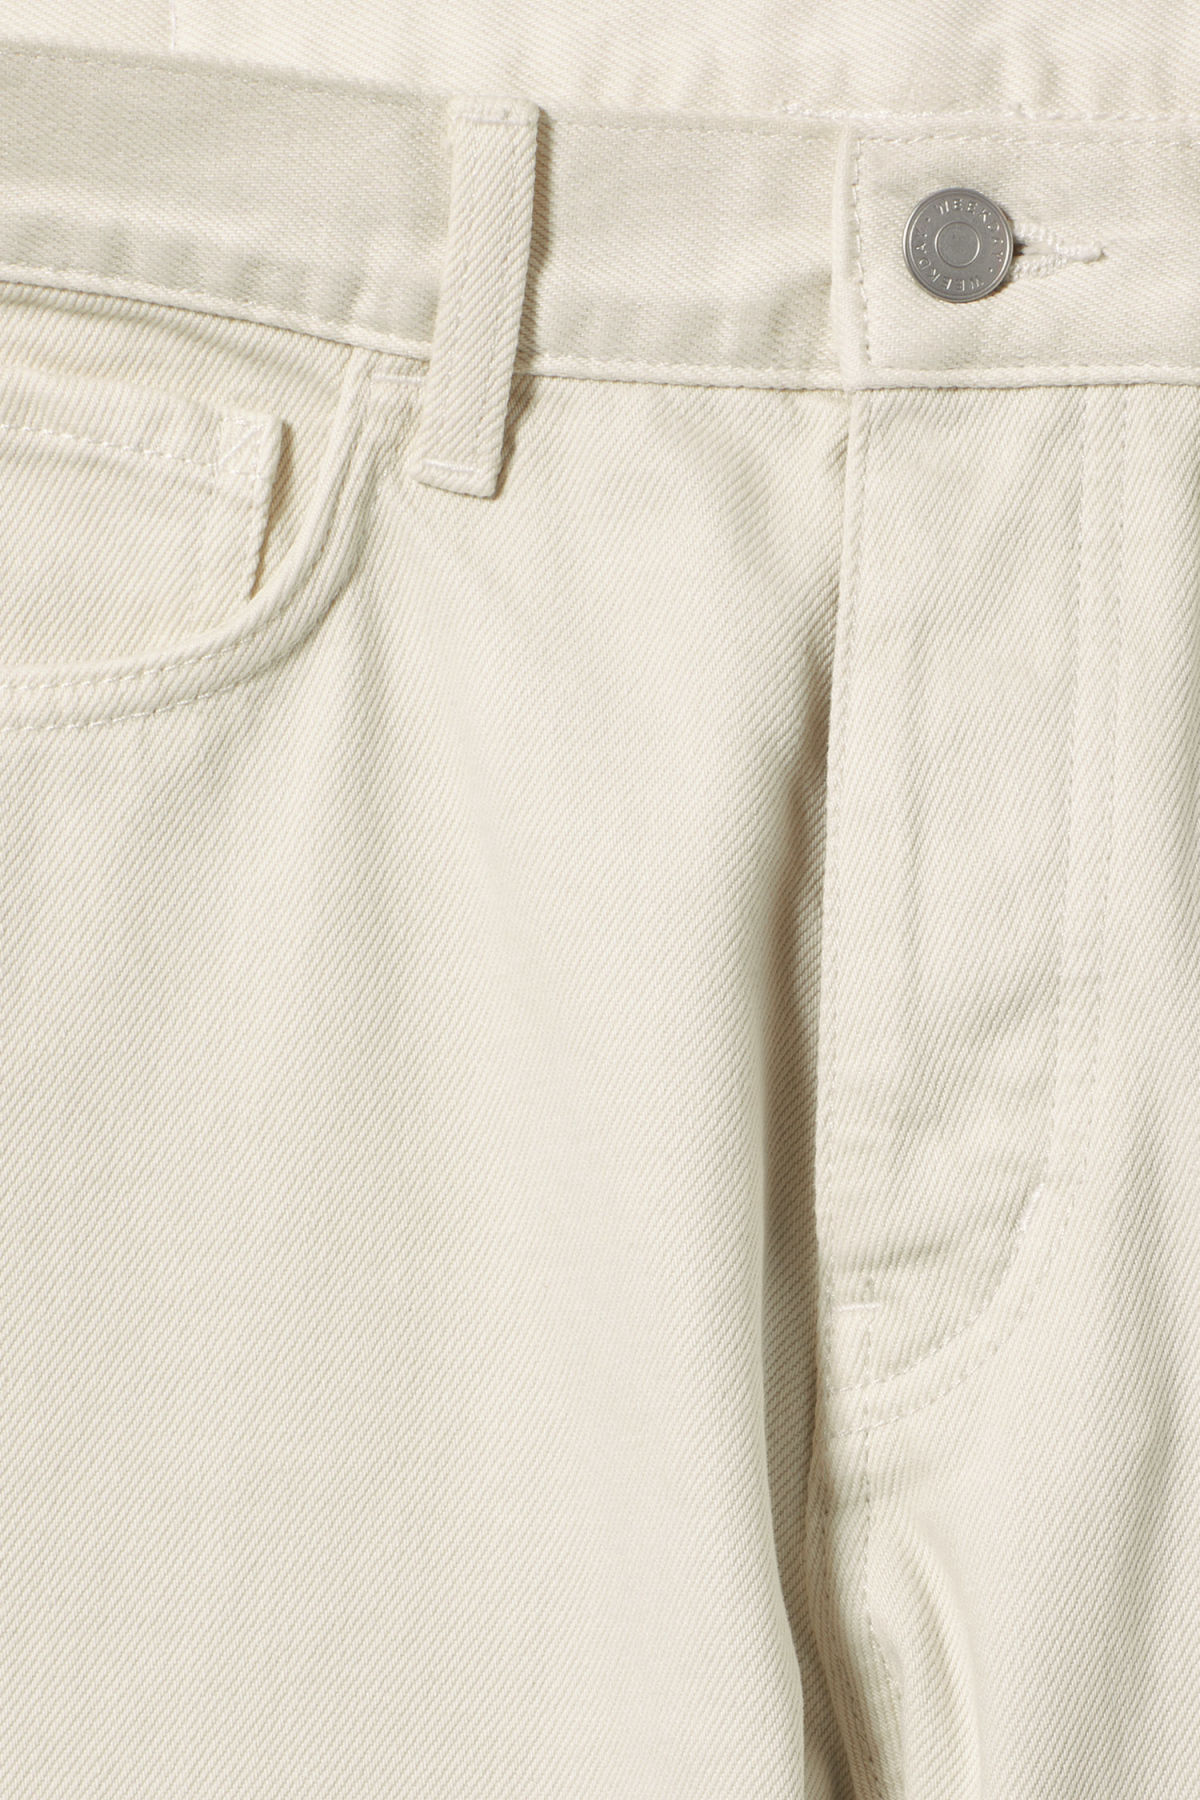 Detailed image of Weekday vacant two-toned jeans in white